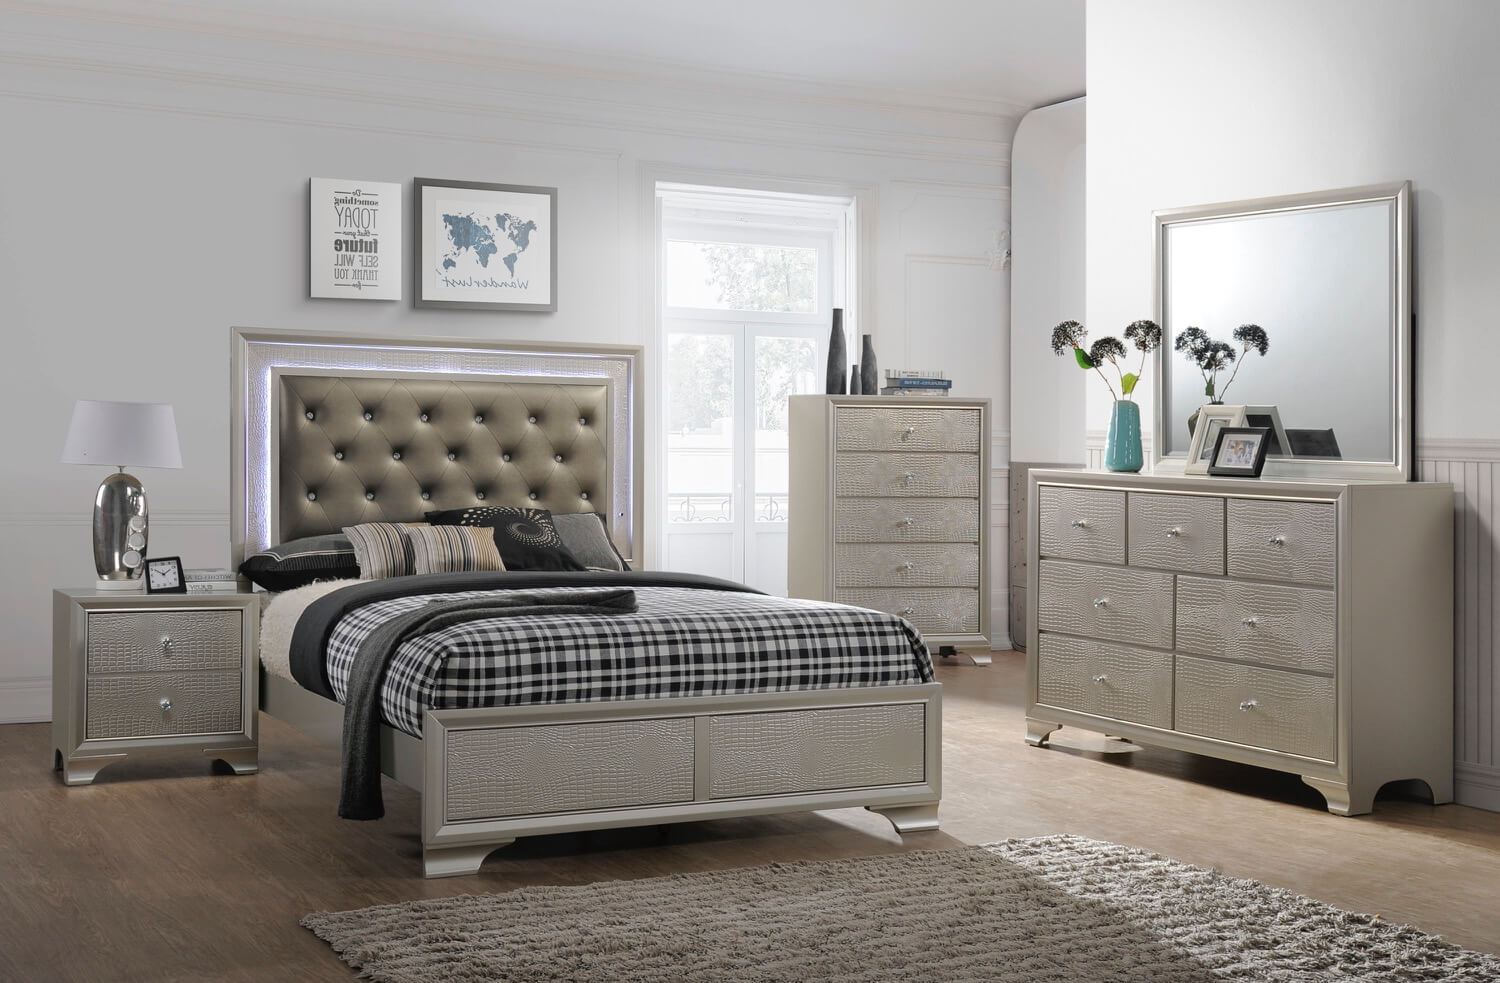 Queen Bed Set Lyssa Led Glam Bedroom Furniture Sets